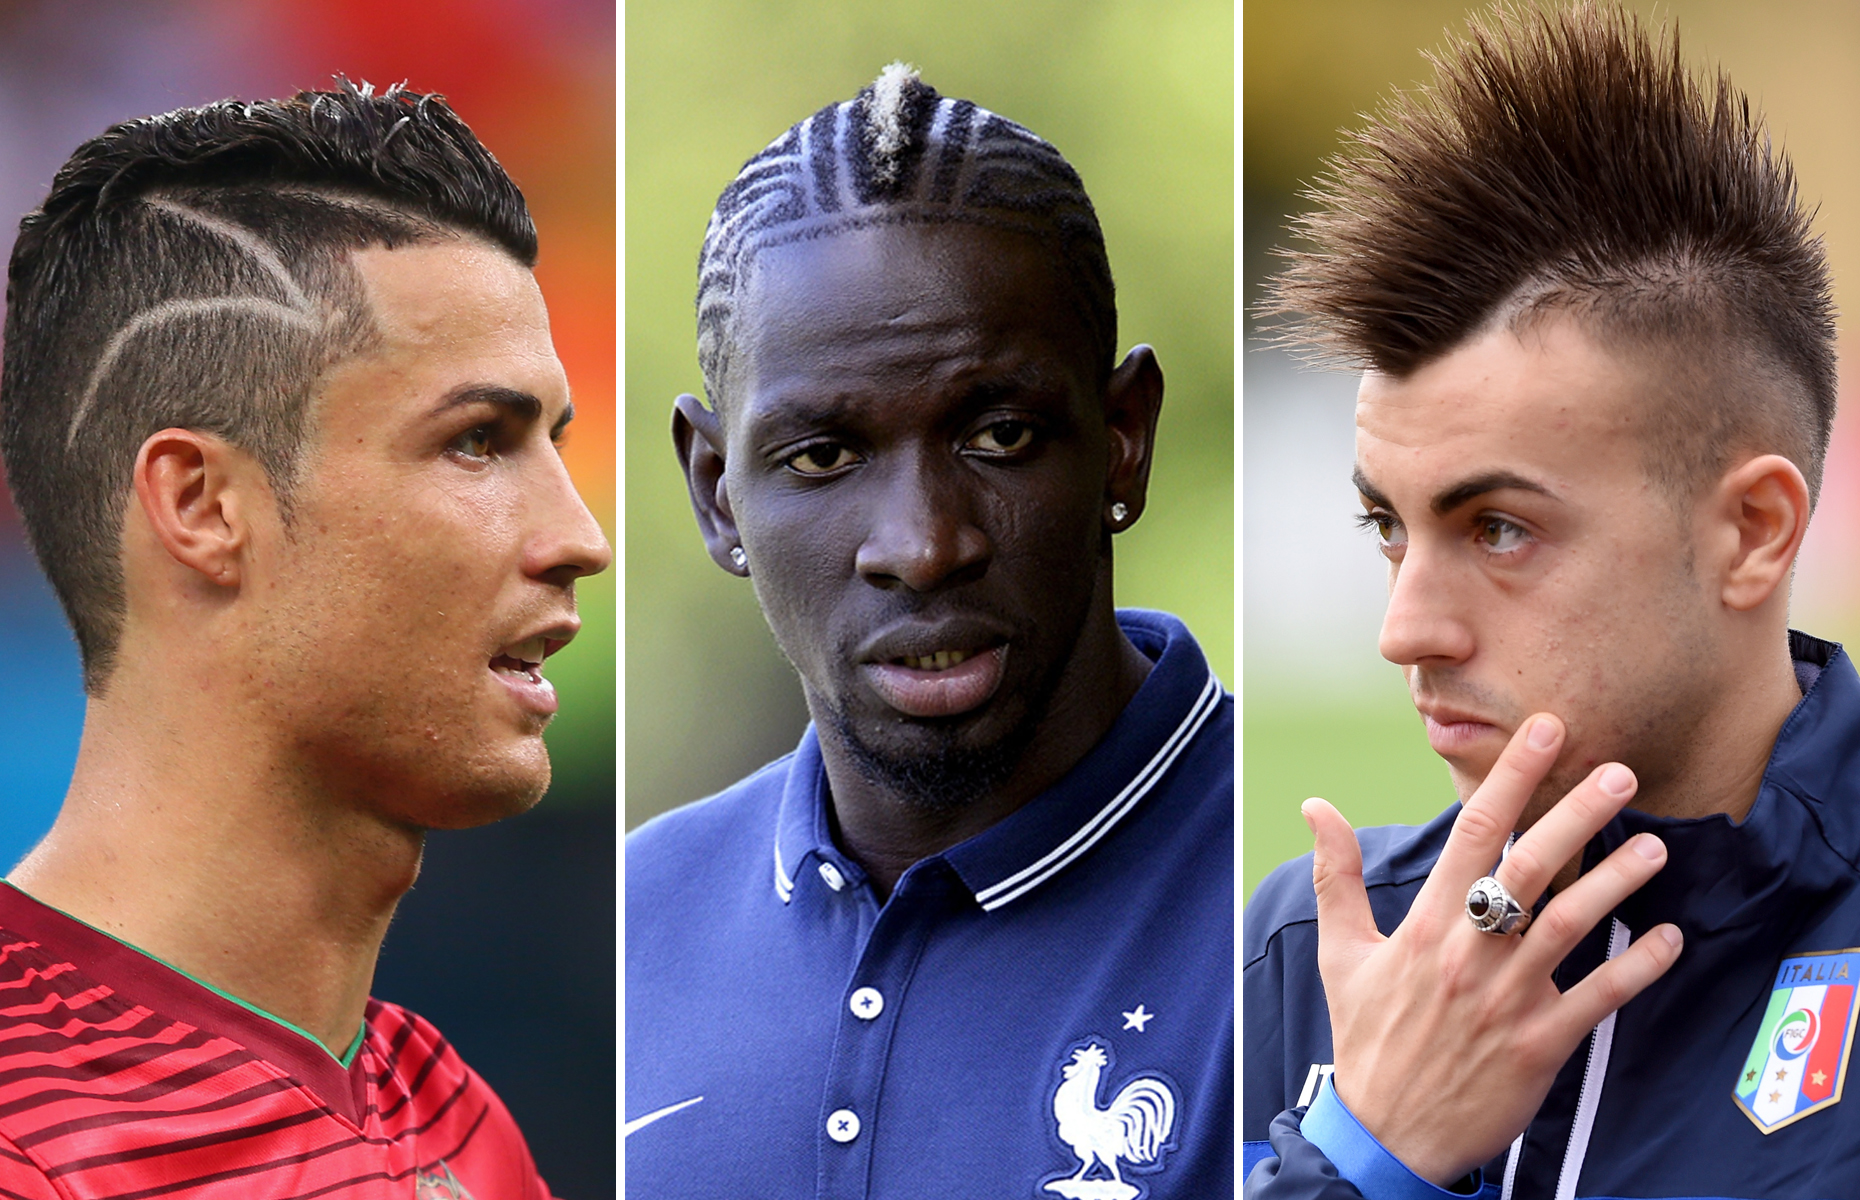 Sports and fashion go hand in hand with athletes dawning a number of funky hairstyles this year. Let's take a look at some that caught the eye in 2014.